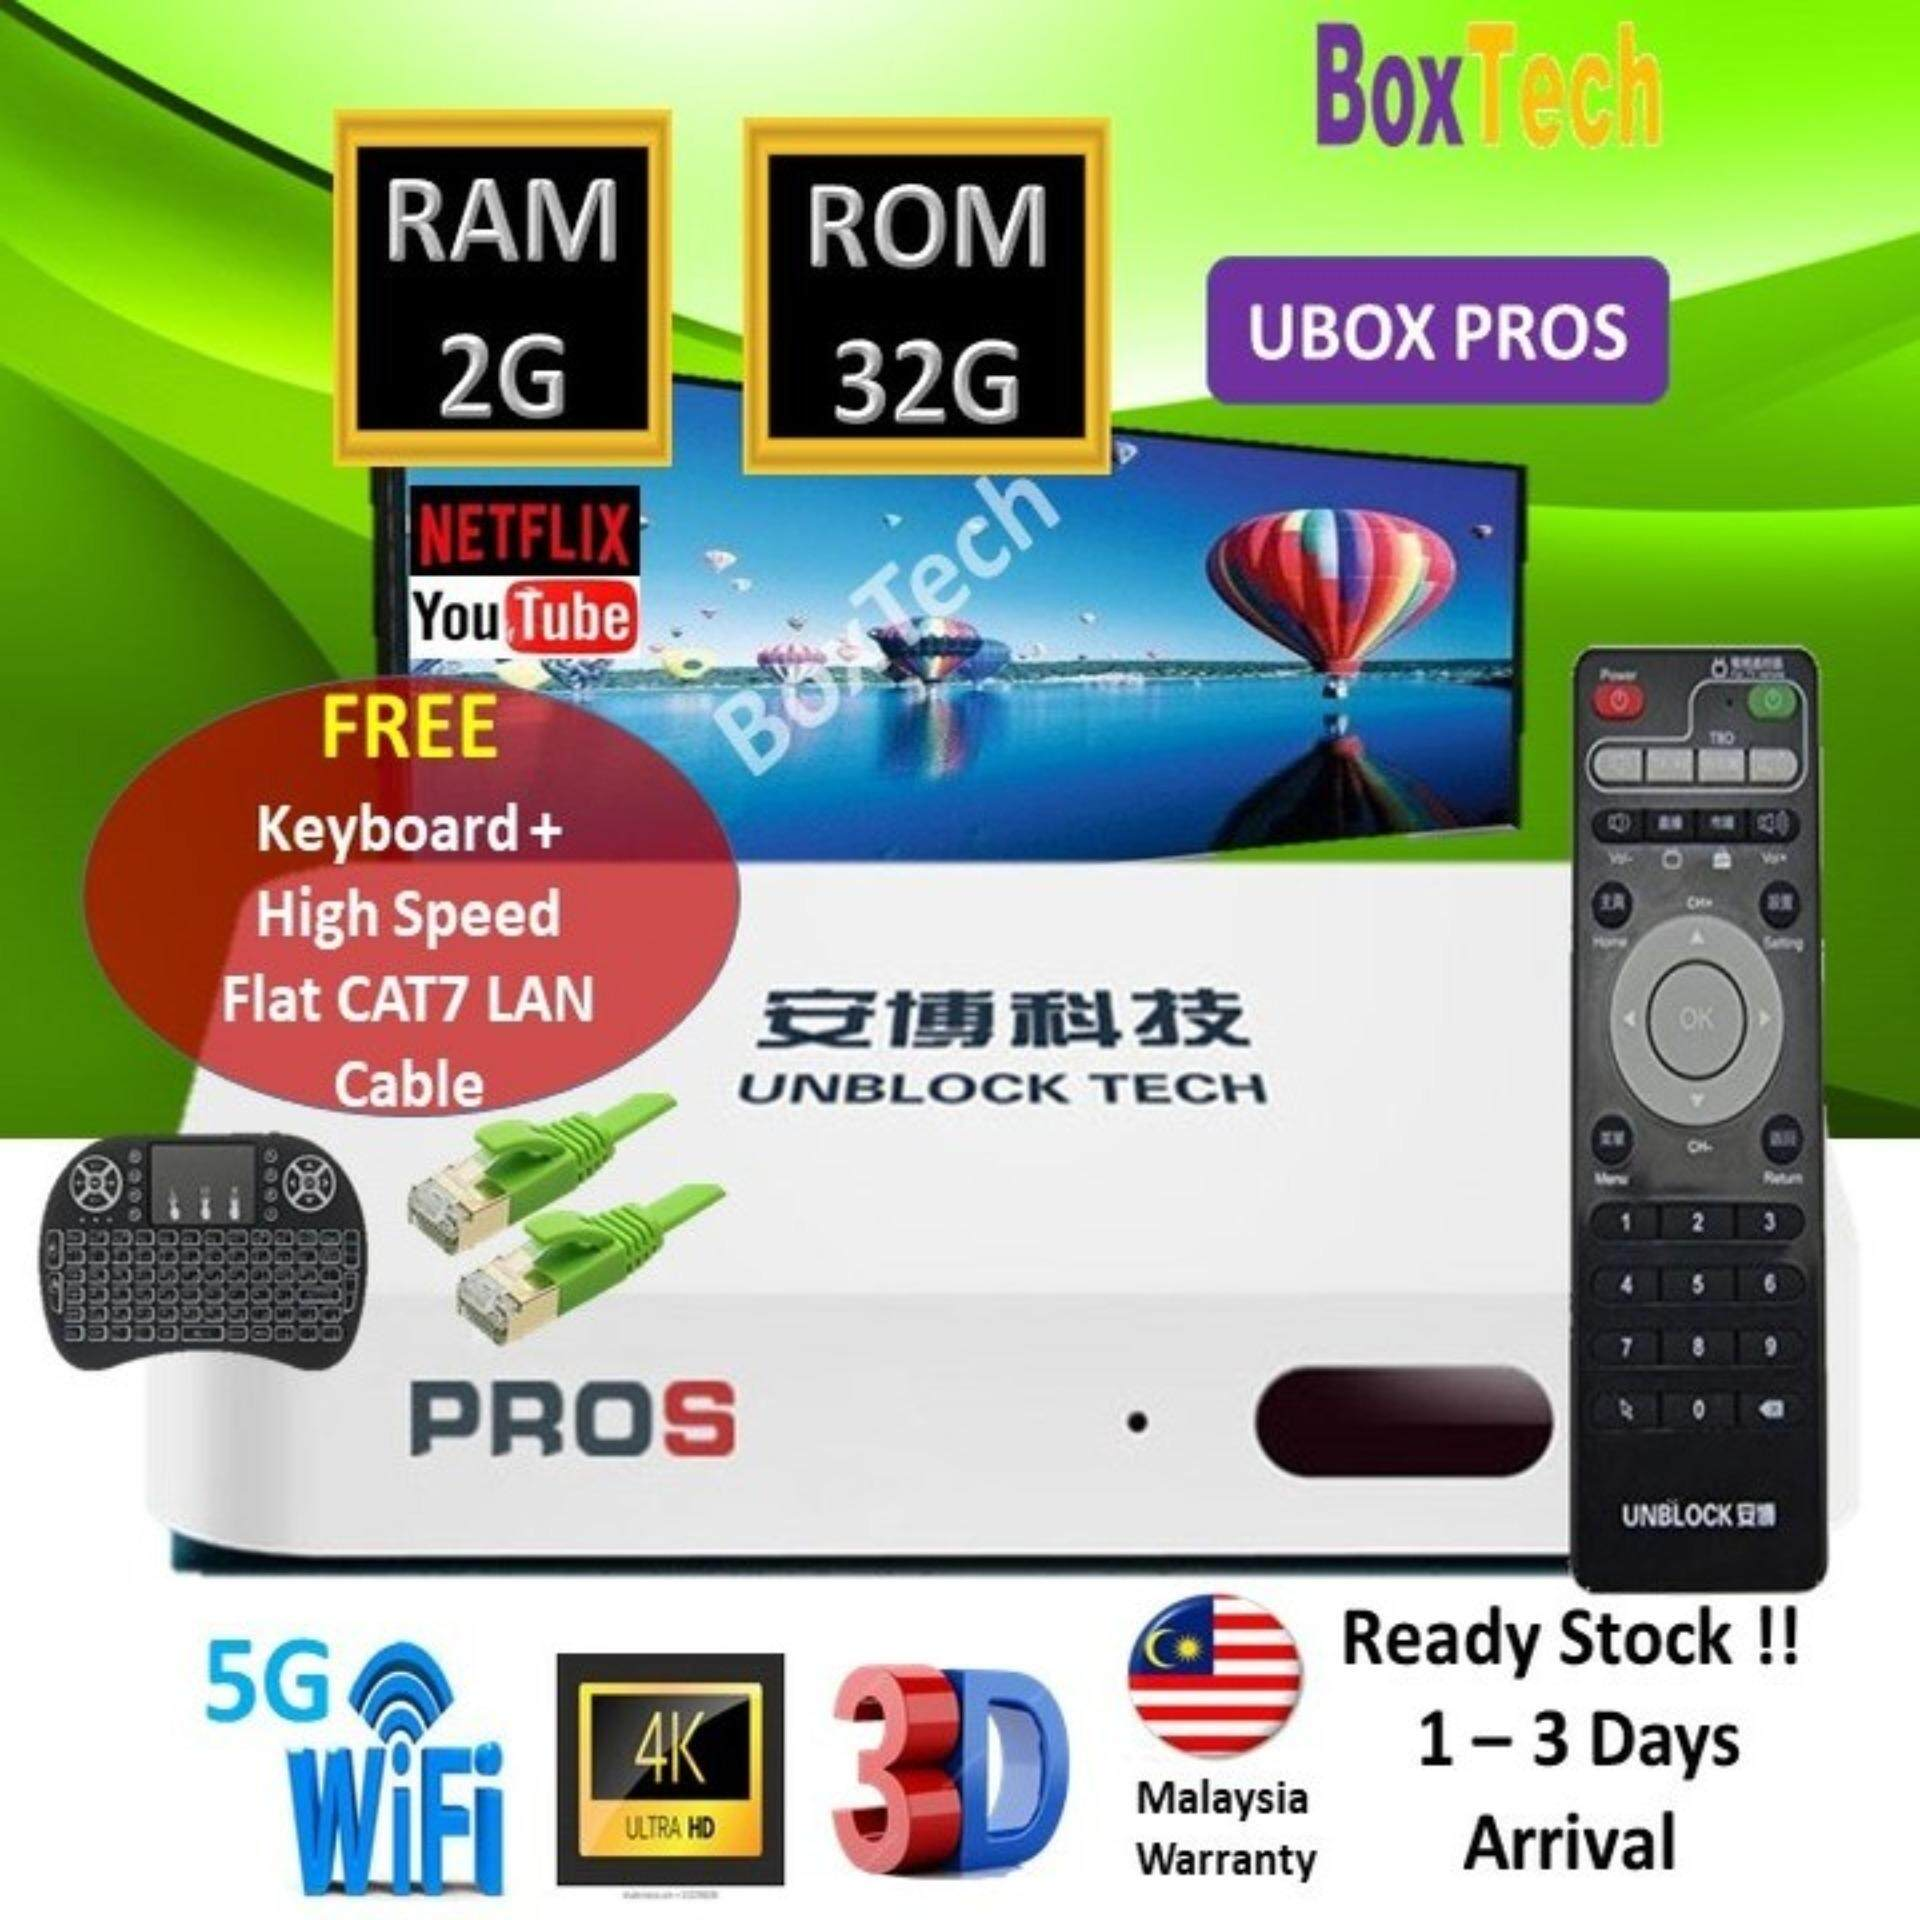 Unblocktech Ubox Gen 7 PROS 4K Android TVbox 2G RAM 32G ROM (Free Air Mouse  Keyboard) Pre installed Global world premium life time IPTV